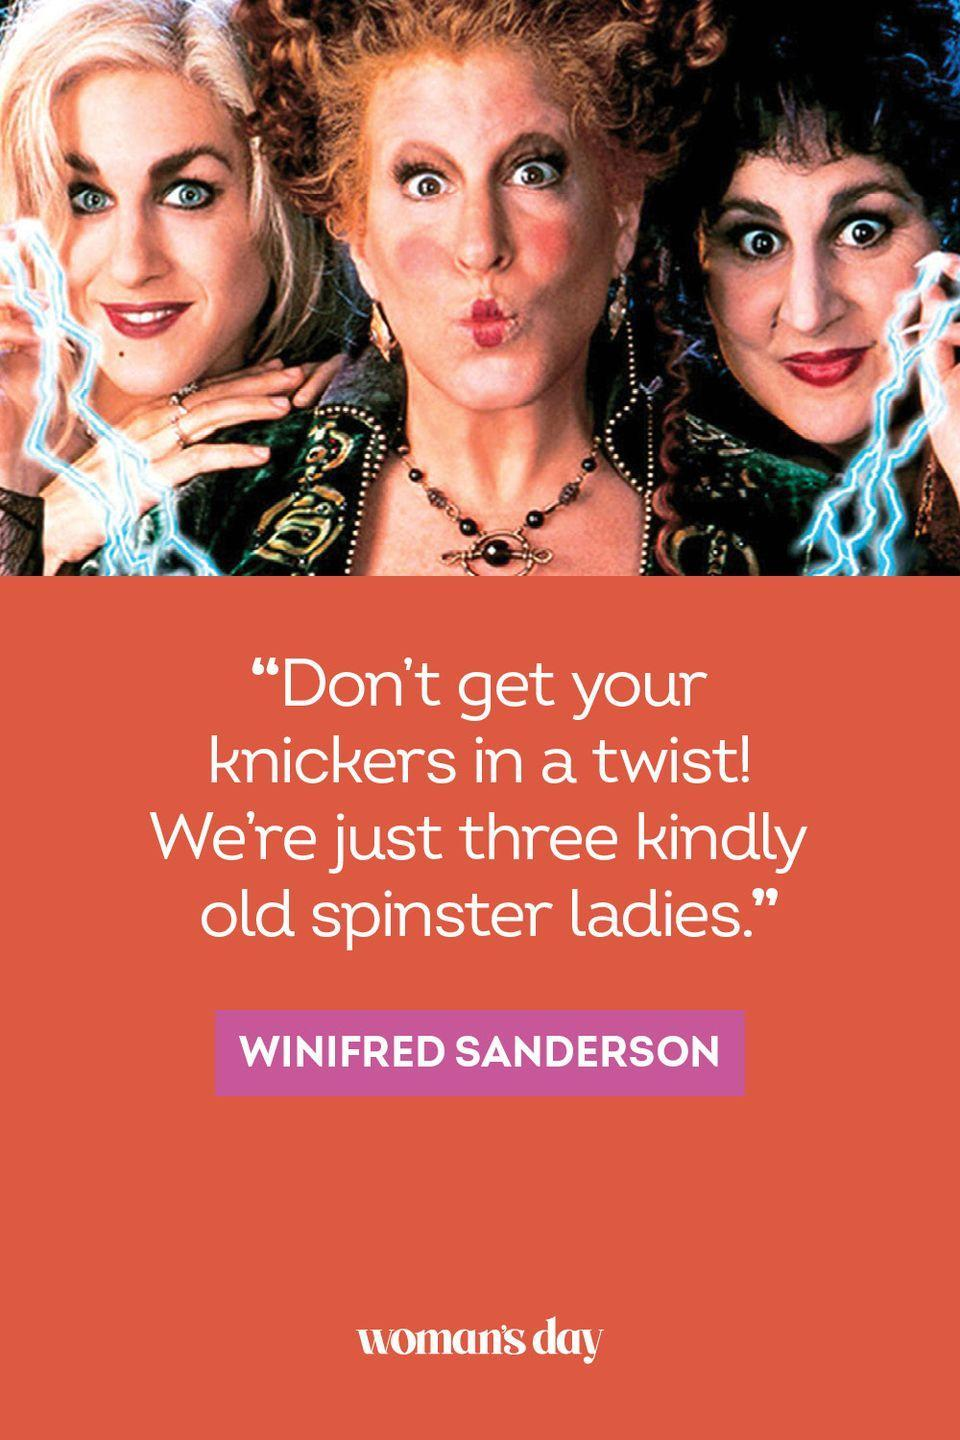 """<p>""""Don't get your knickers in a twist! We're just three kindly old spinster ladies."""" —Winifred Sanderson</p>"""